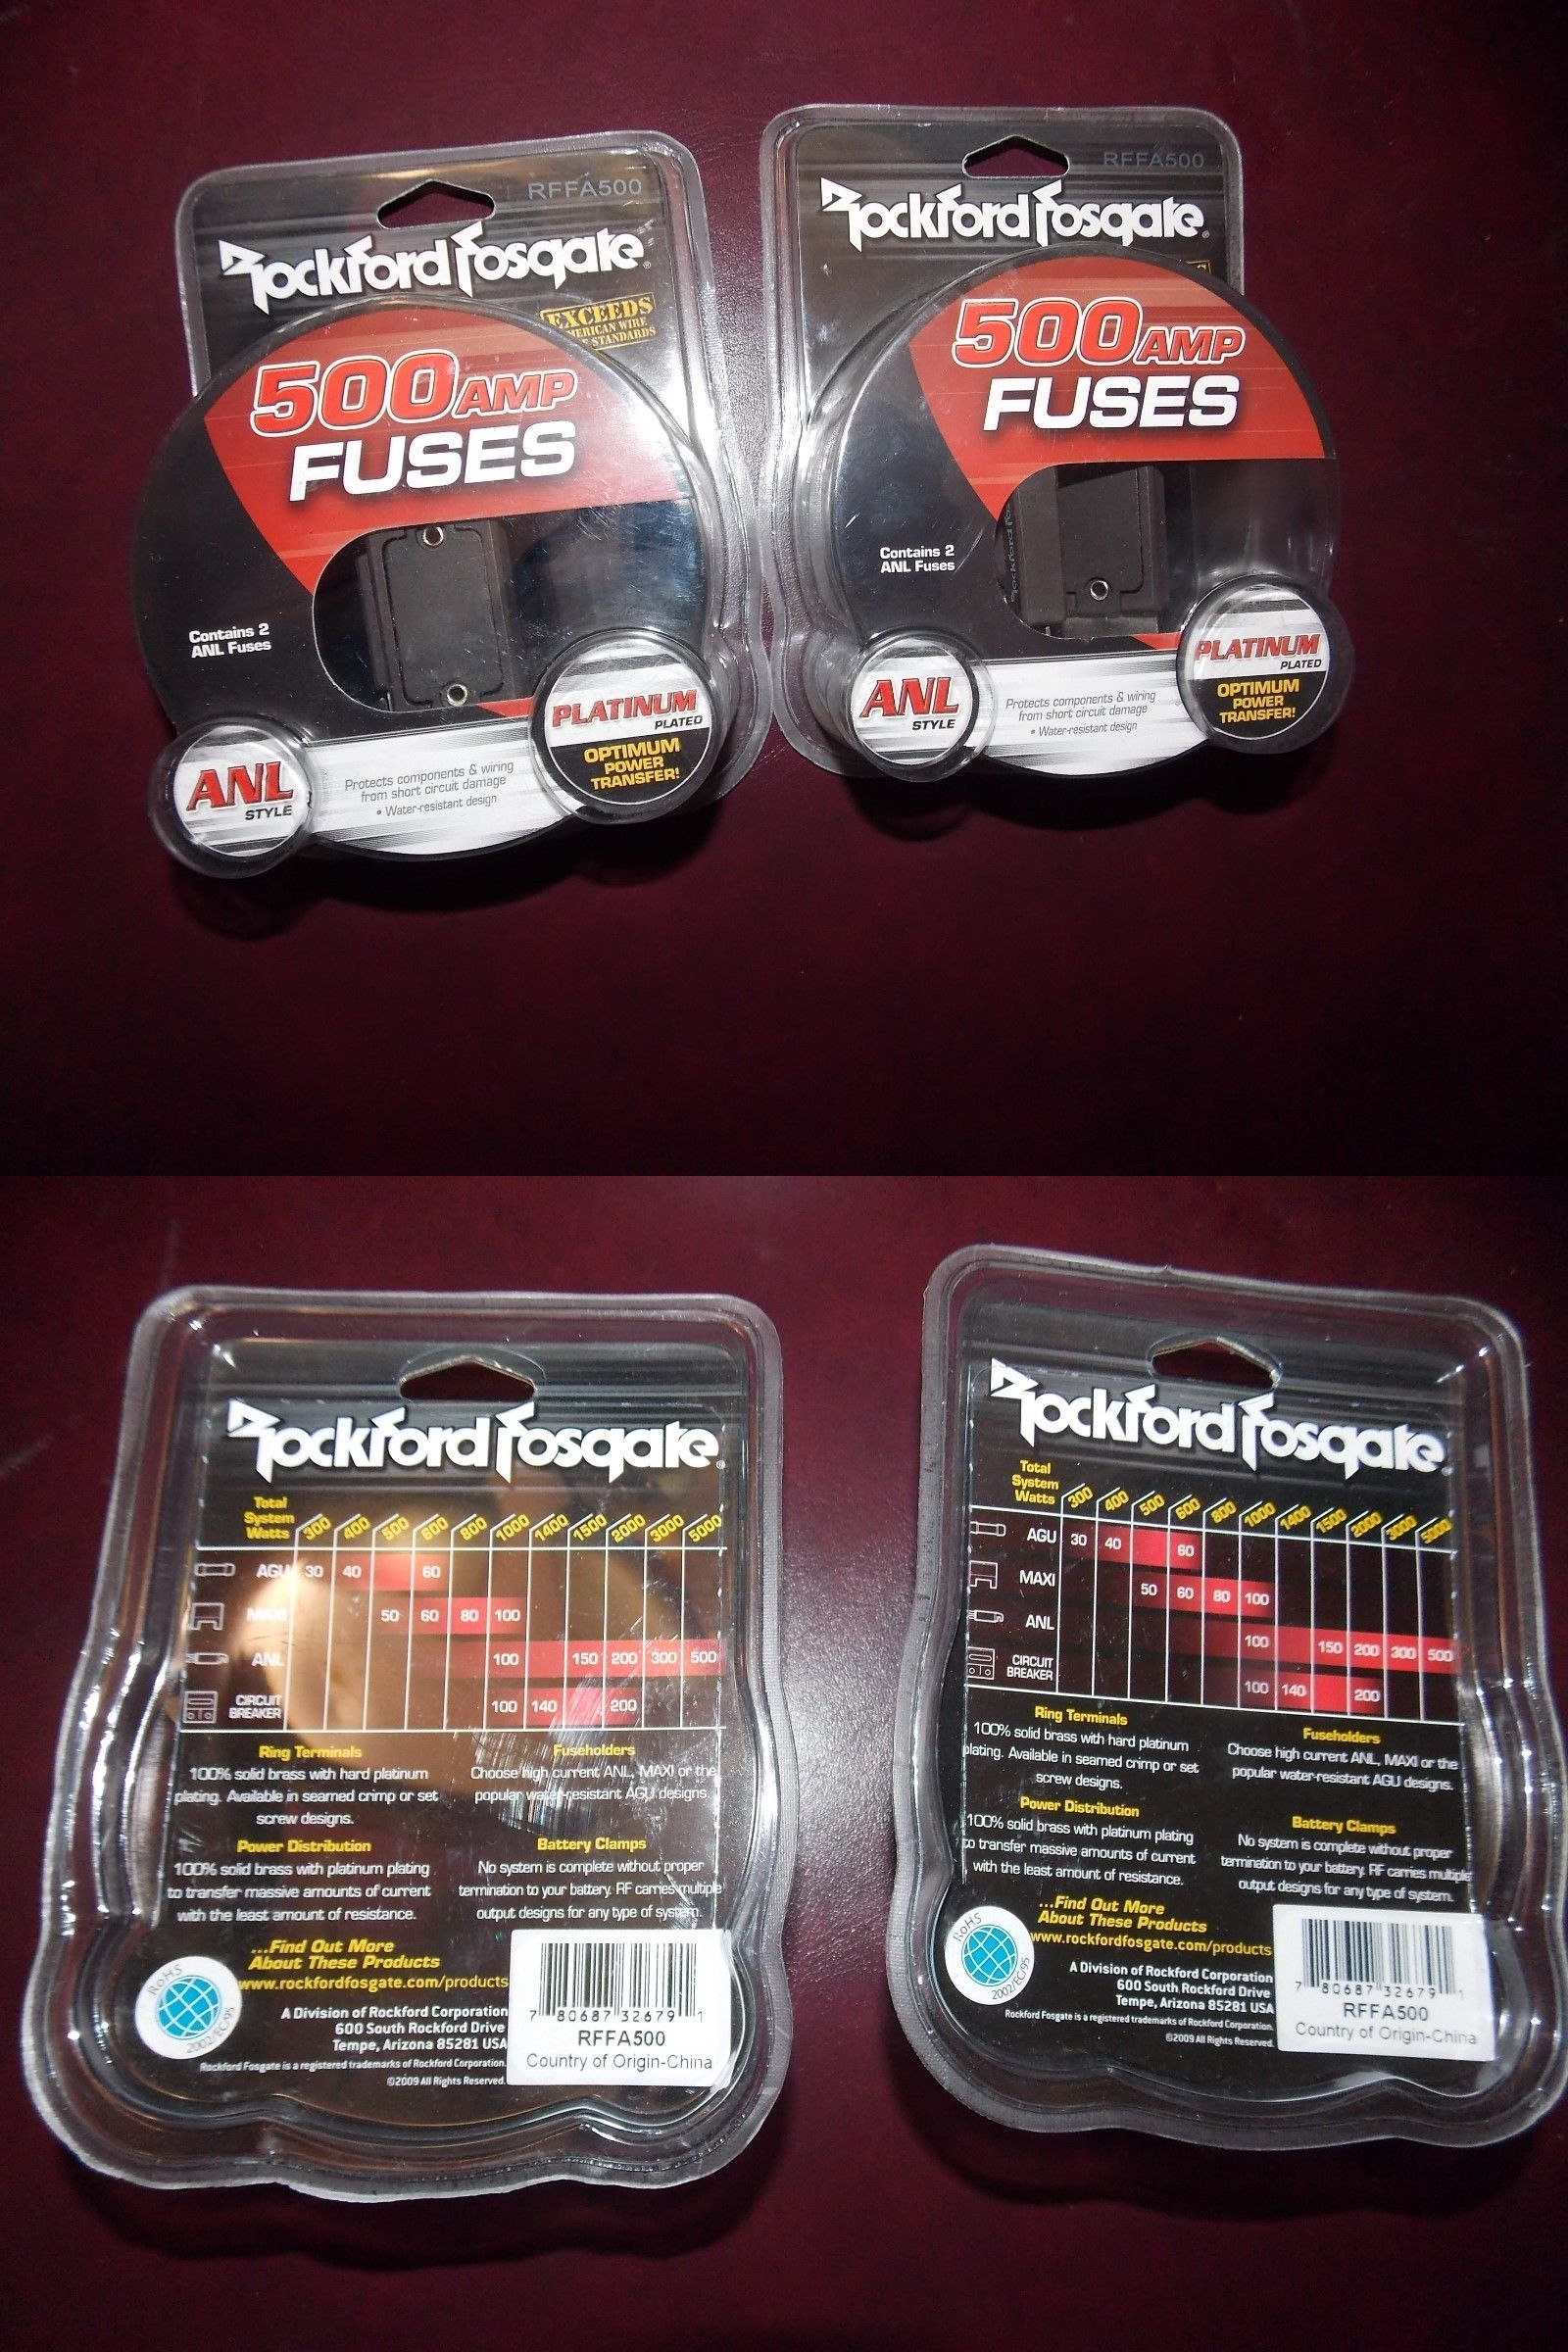 fuses and fuse holders 2 rockford fosgate rffa500 500 amp anl fuses and fuse holders 2 rockford fosgate rffa500 500 amp anl fuses for anl style